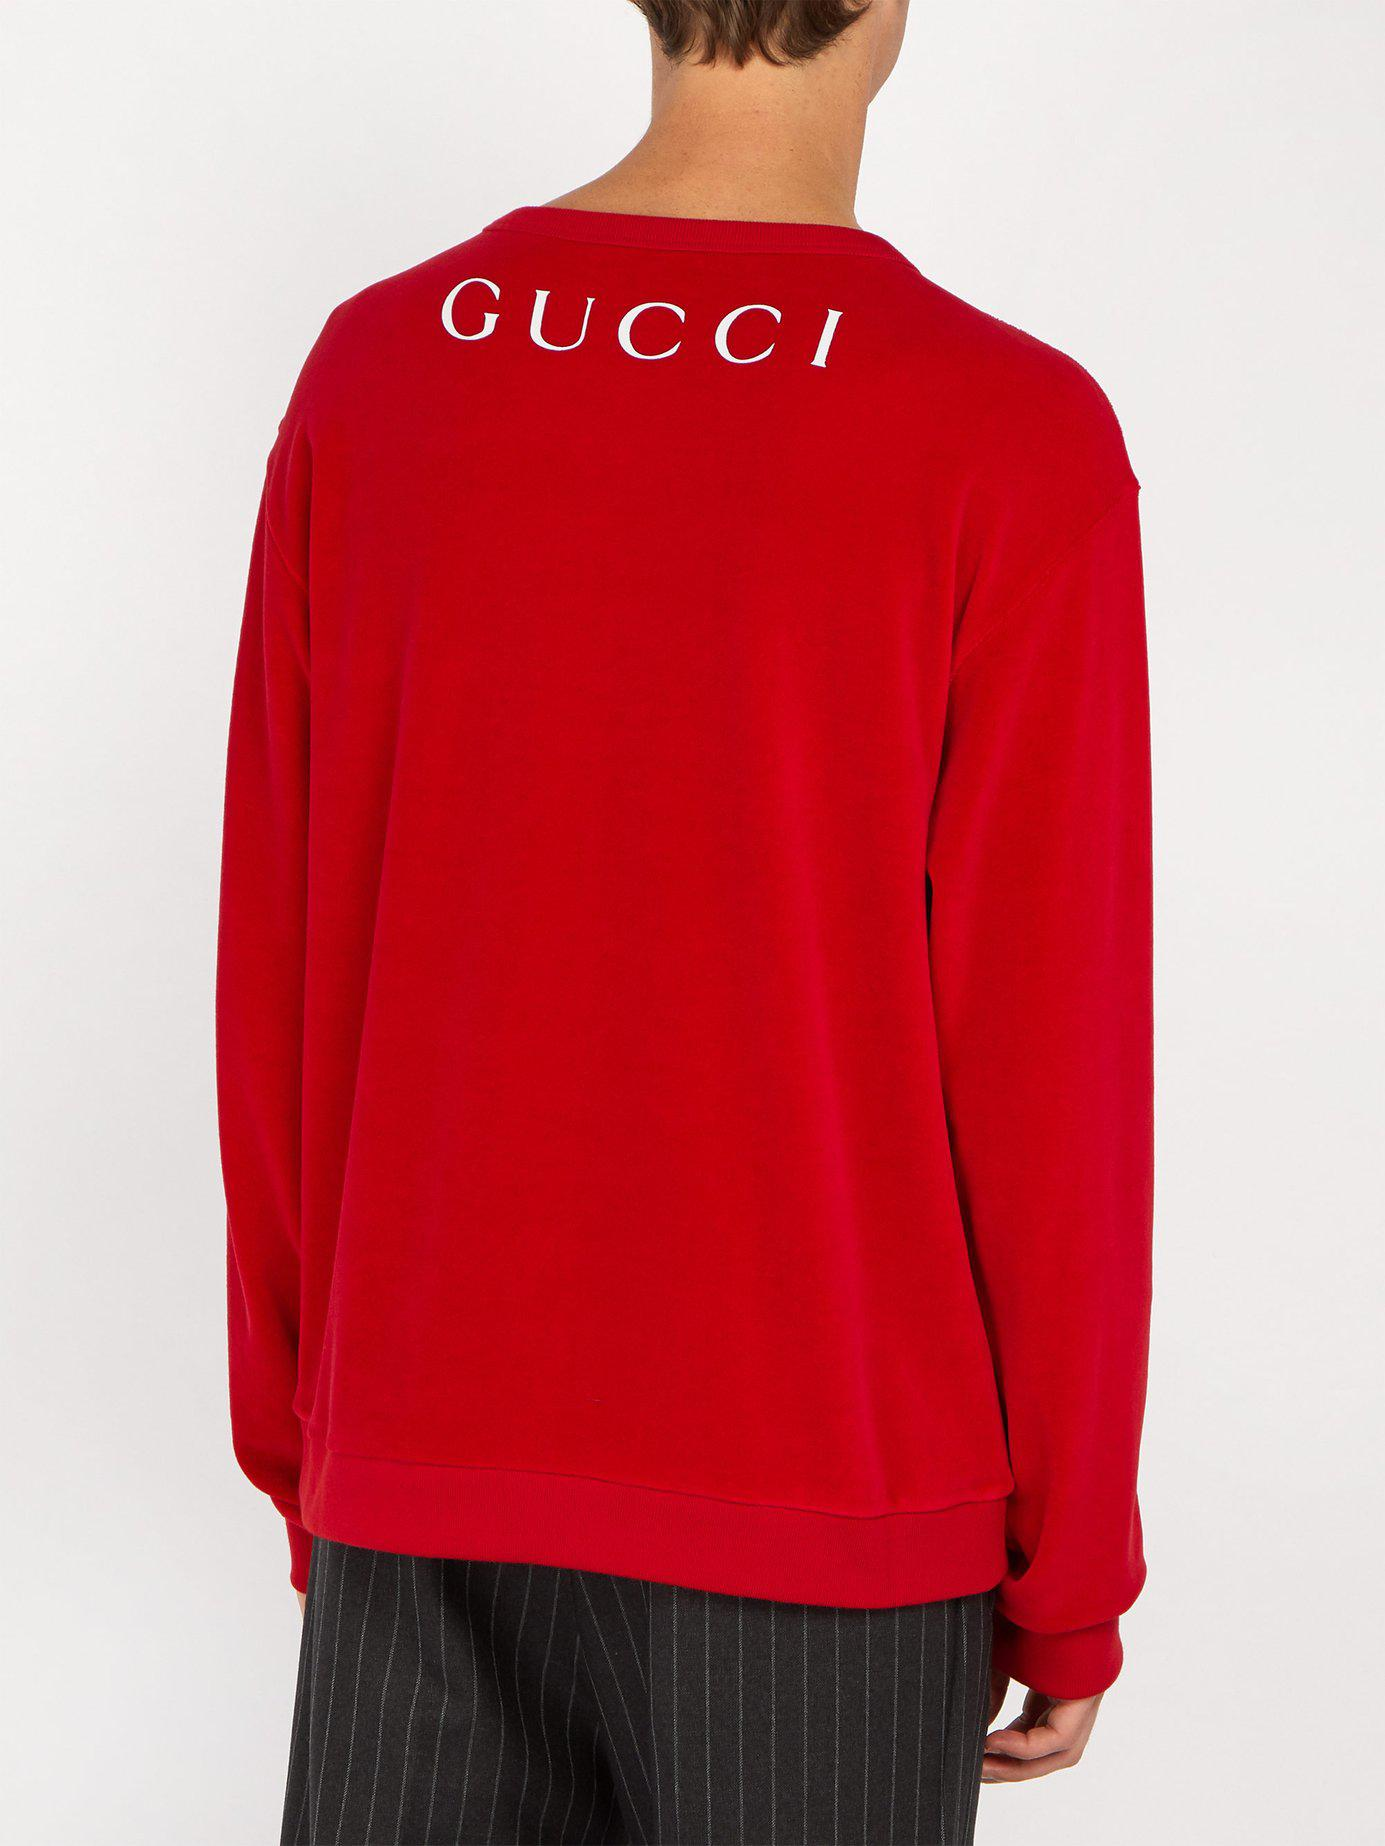 759960c9 Gucci Paramount Print Velvet Sweater in Red for Men - Lyst